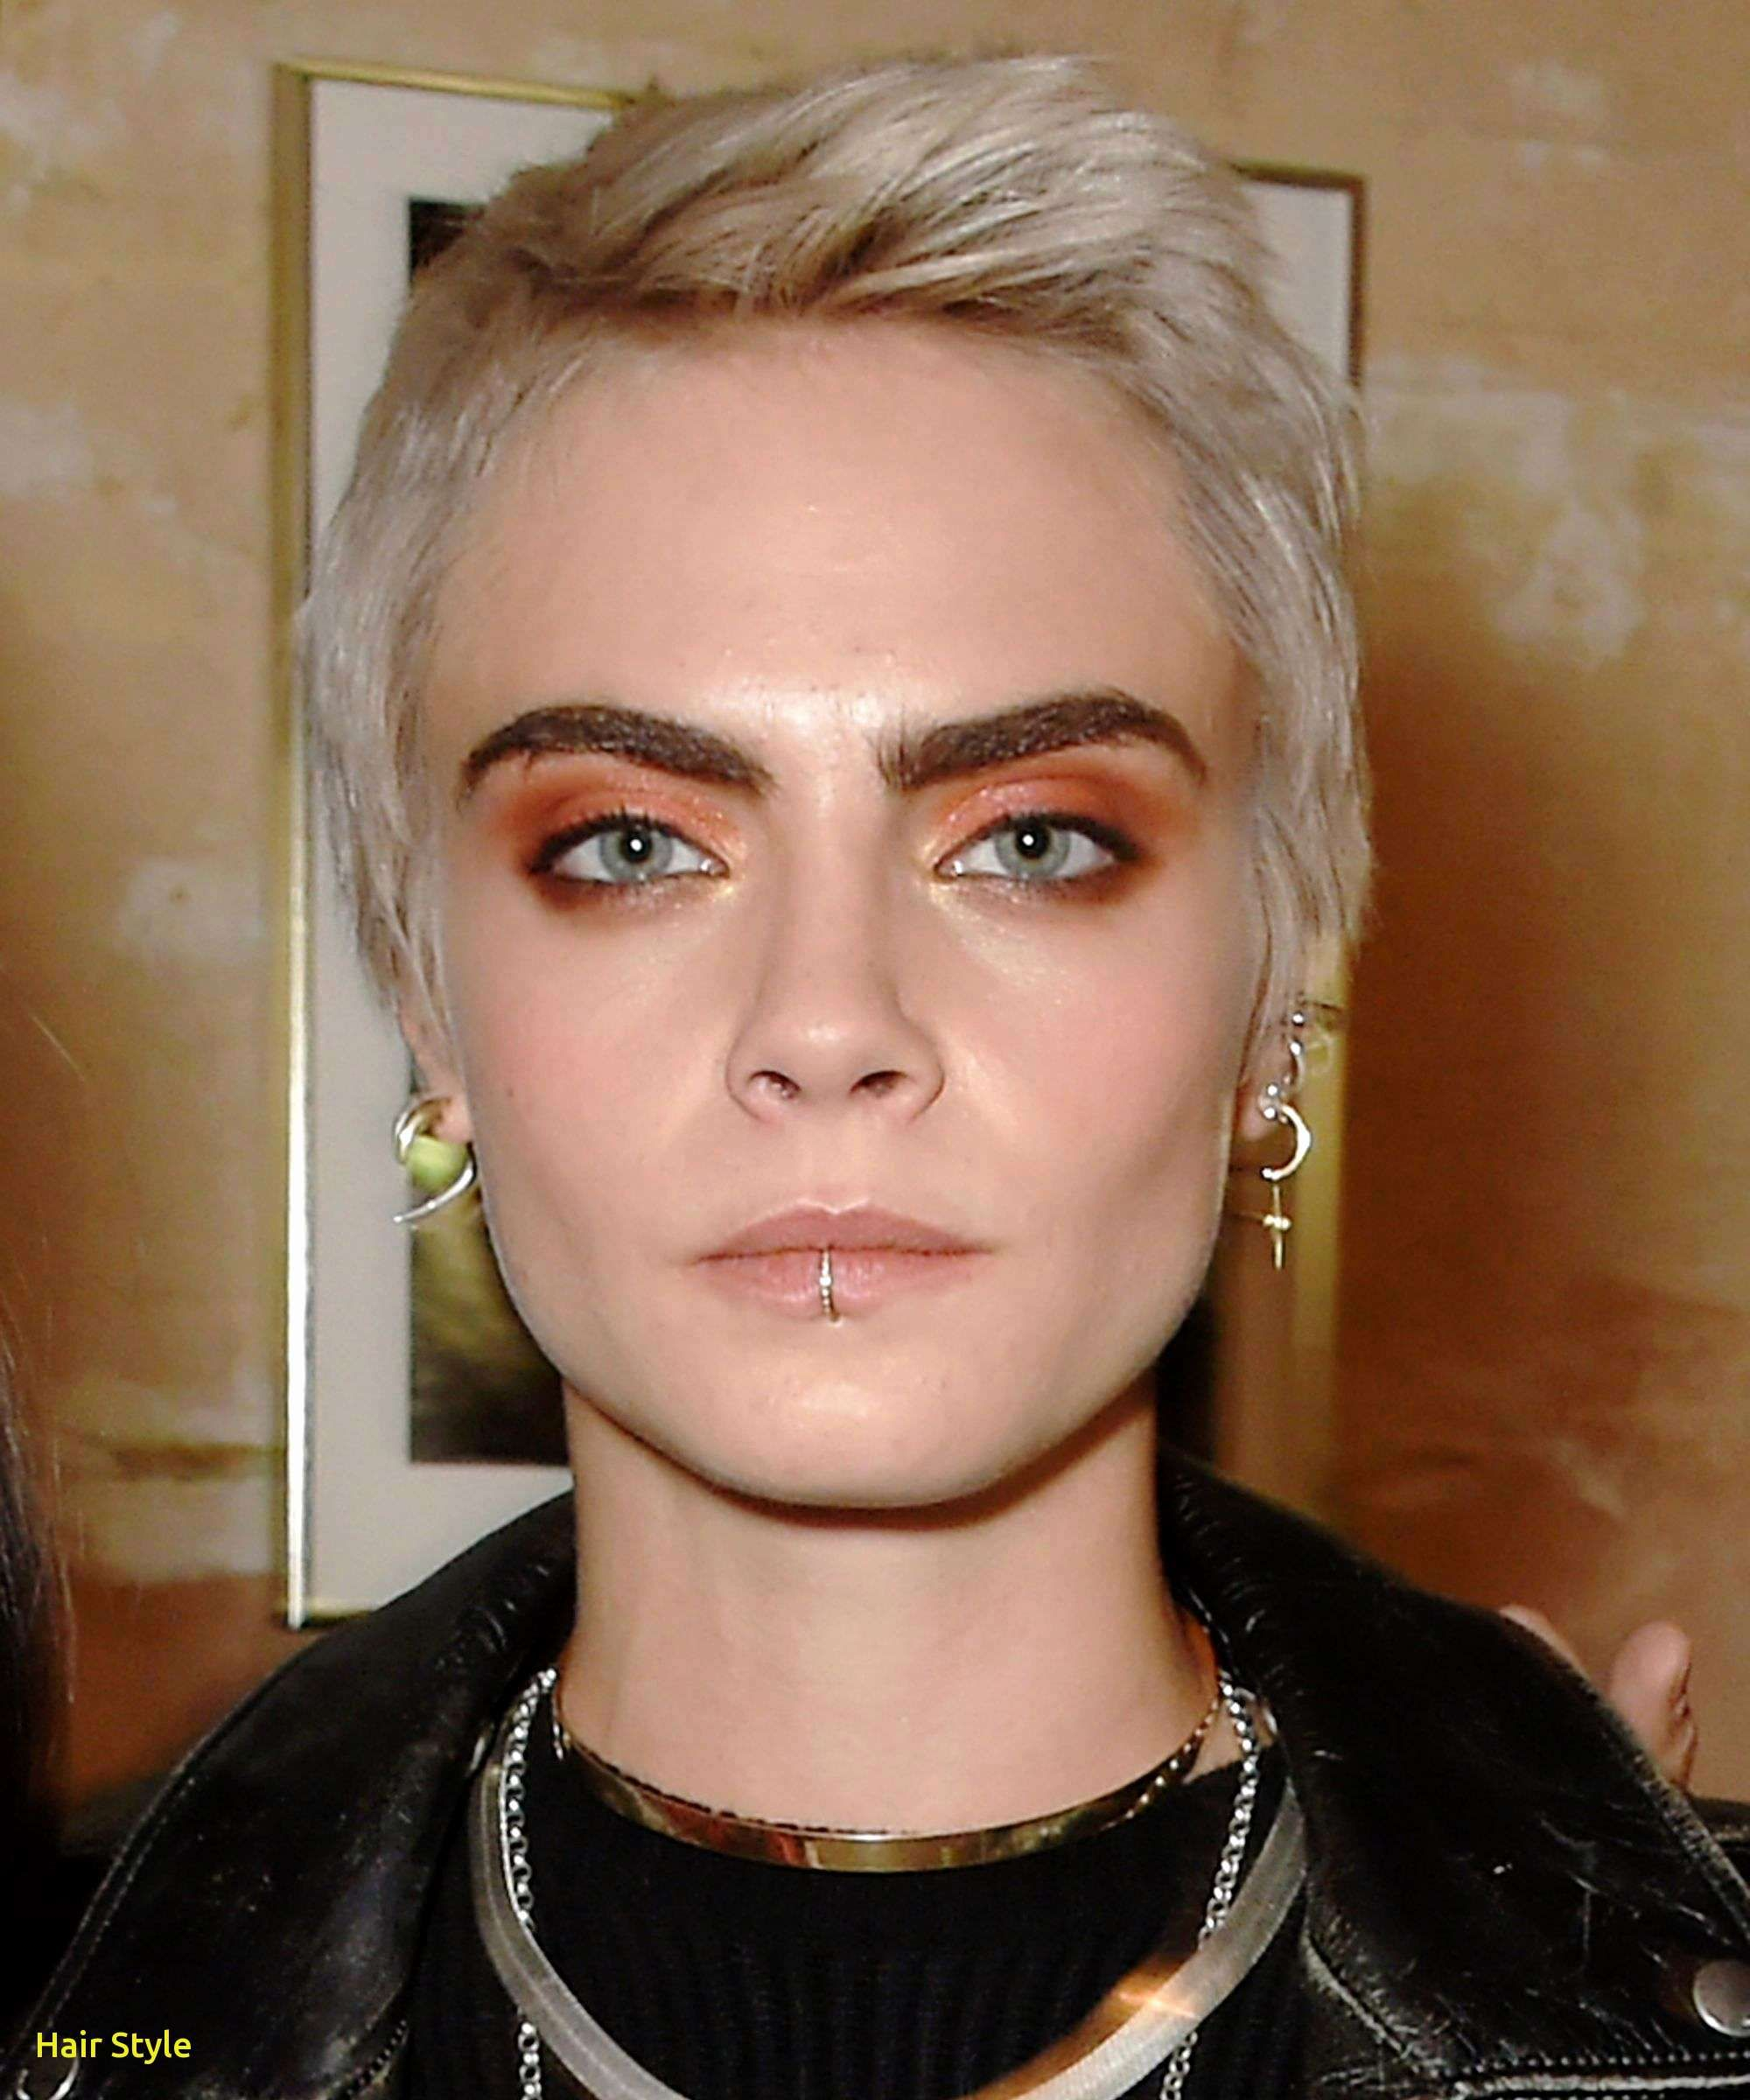 Account Suspended Cara Delevingne Hair Very Short Hair Short Hair Styles